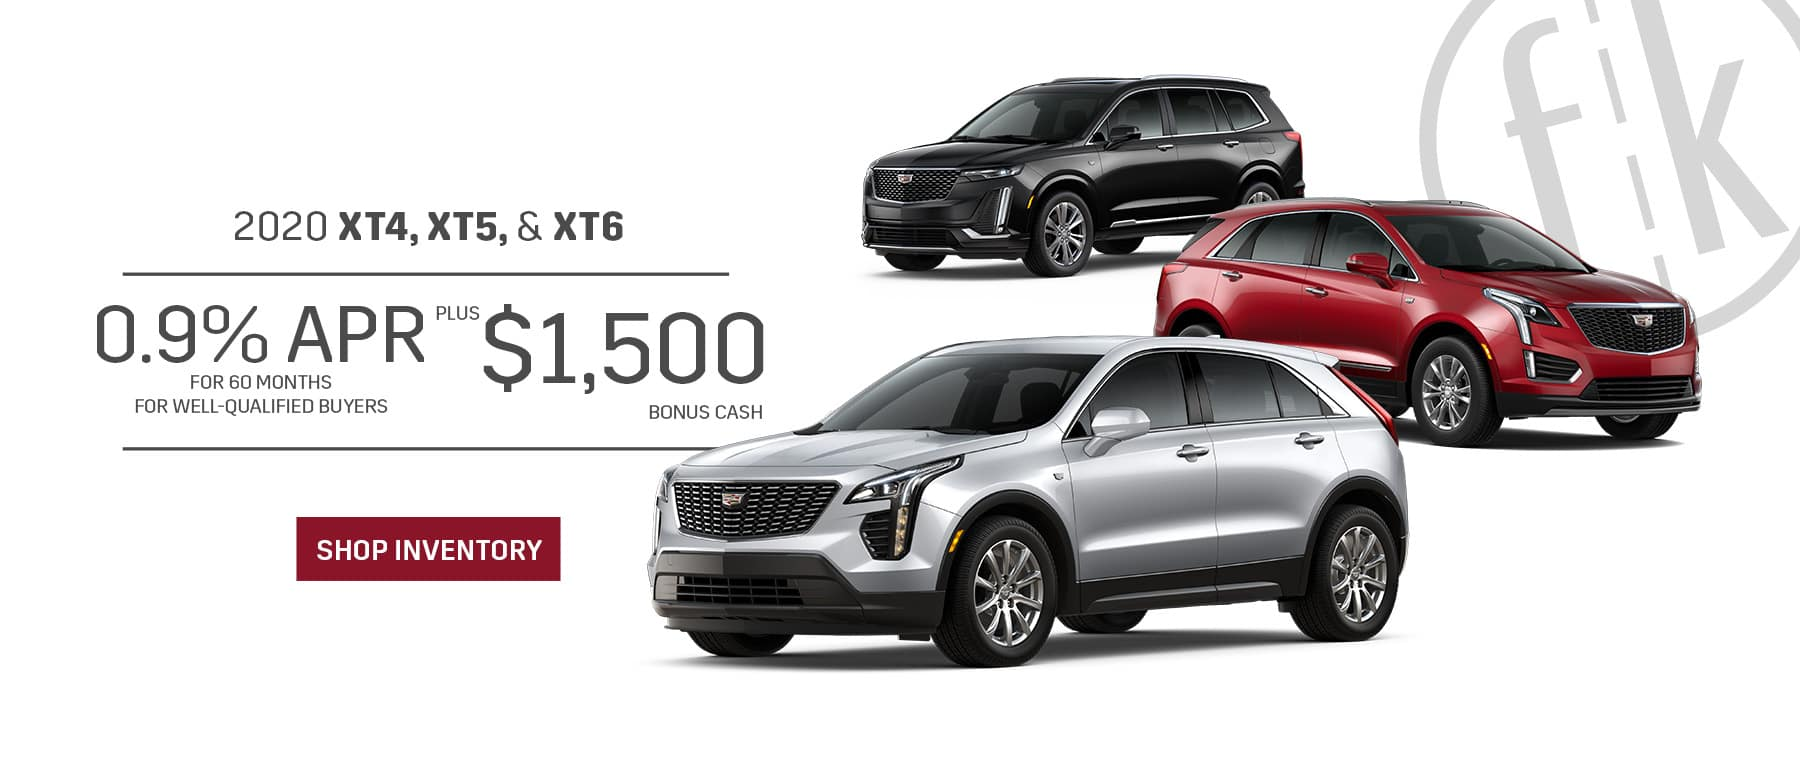 2020 XT4, XT5, XT6 0.9% for 60 mos. -PLUS- $1,500 Bonus Cash